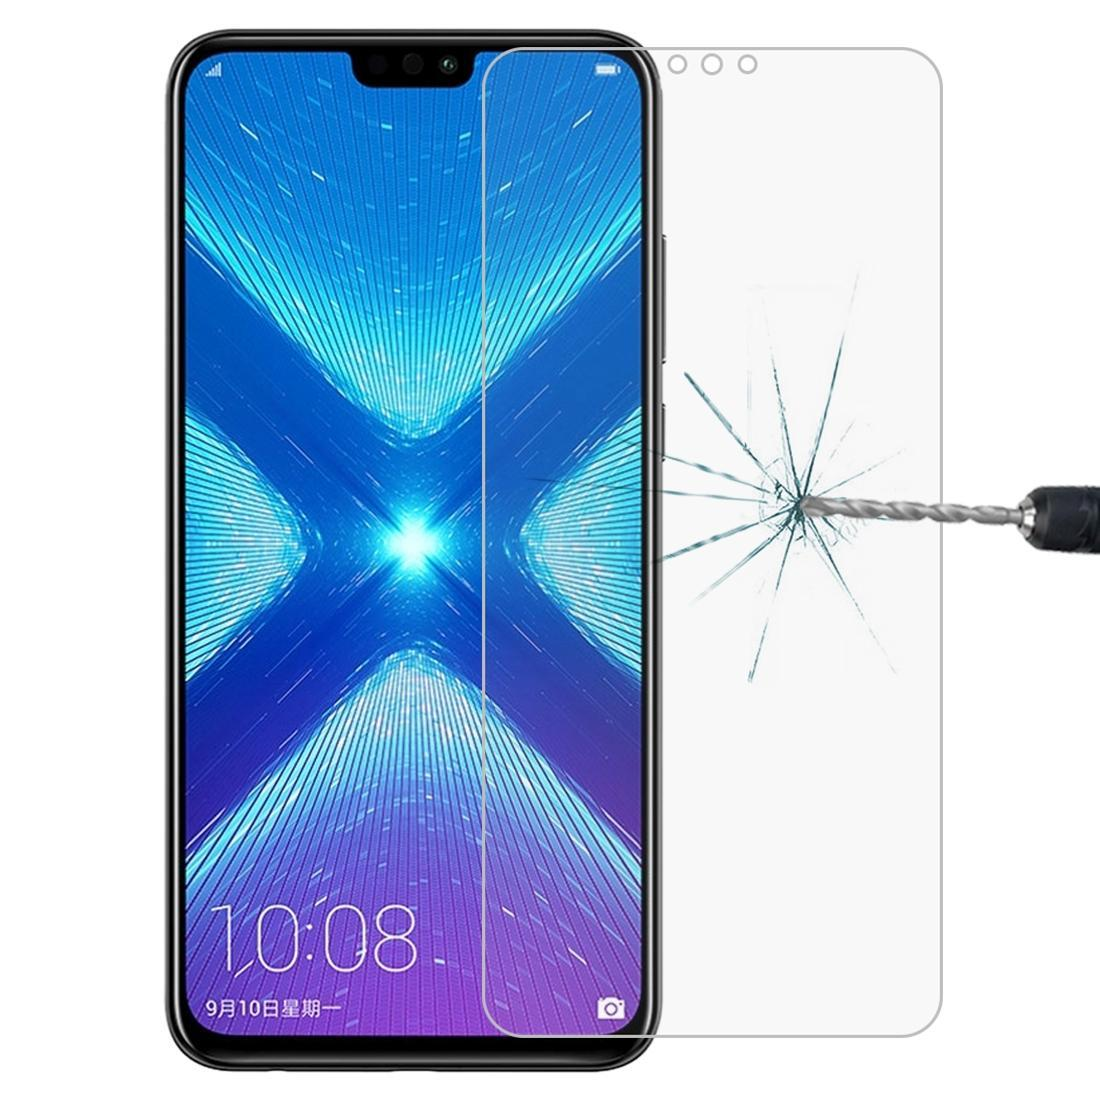 Phone Screen Film 100 PCS for Huawei Honor 4C 0.26mm 9H Surface Hardness 2.5D Explosion-Proof Tempered Glass Screen Film Anti-Scratch Tempered Glass